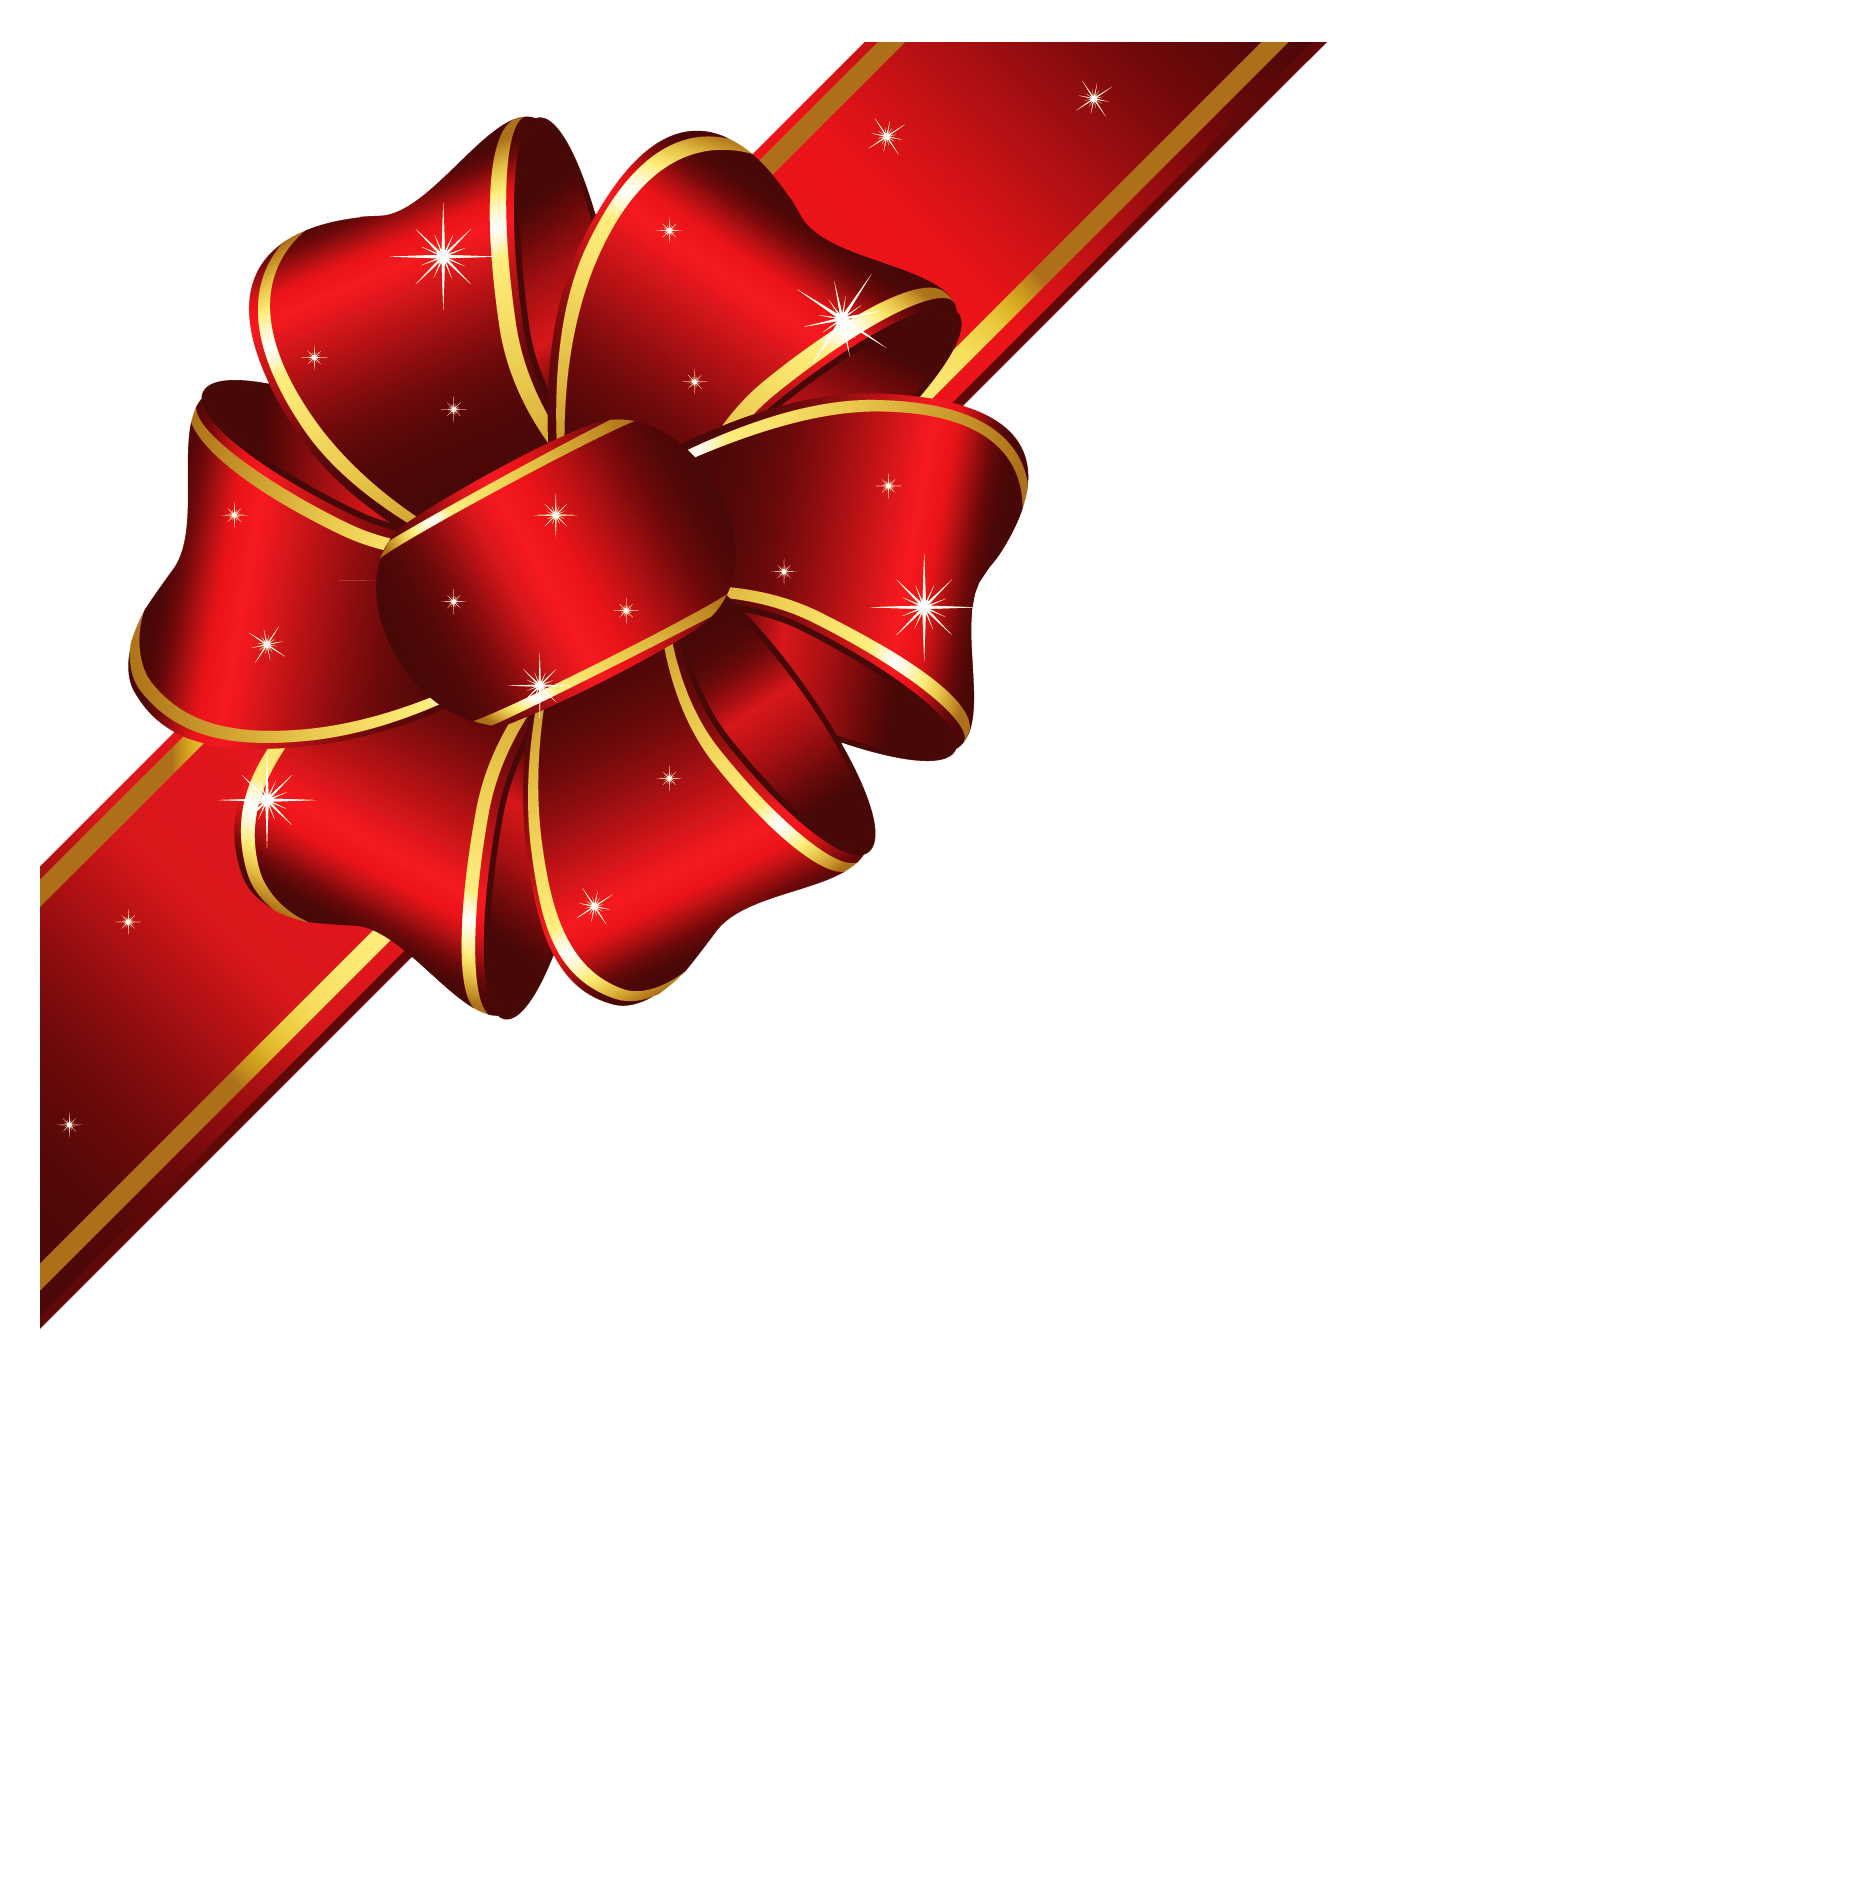 Gift ribbon image free. Red backgrounds png clip art royalty free